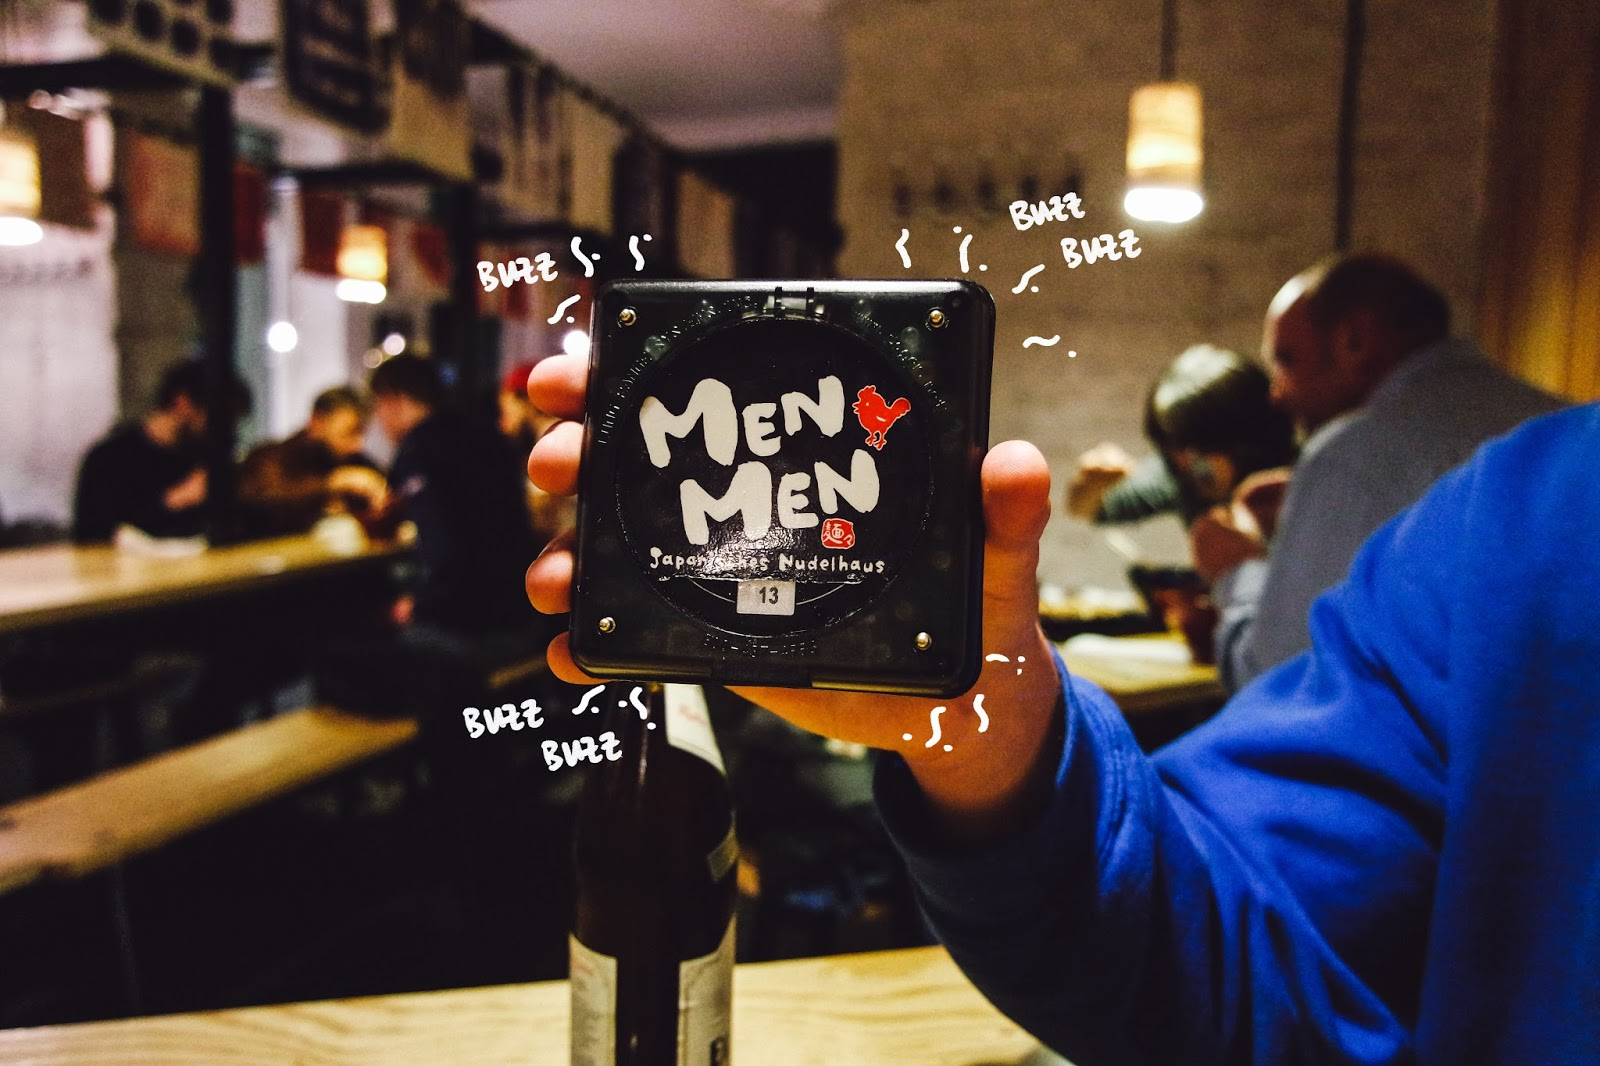 men men berlin food 3